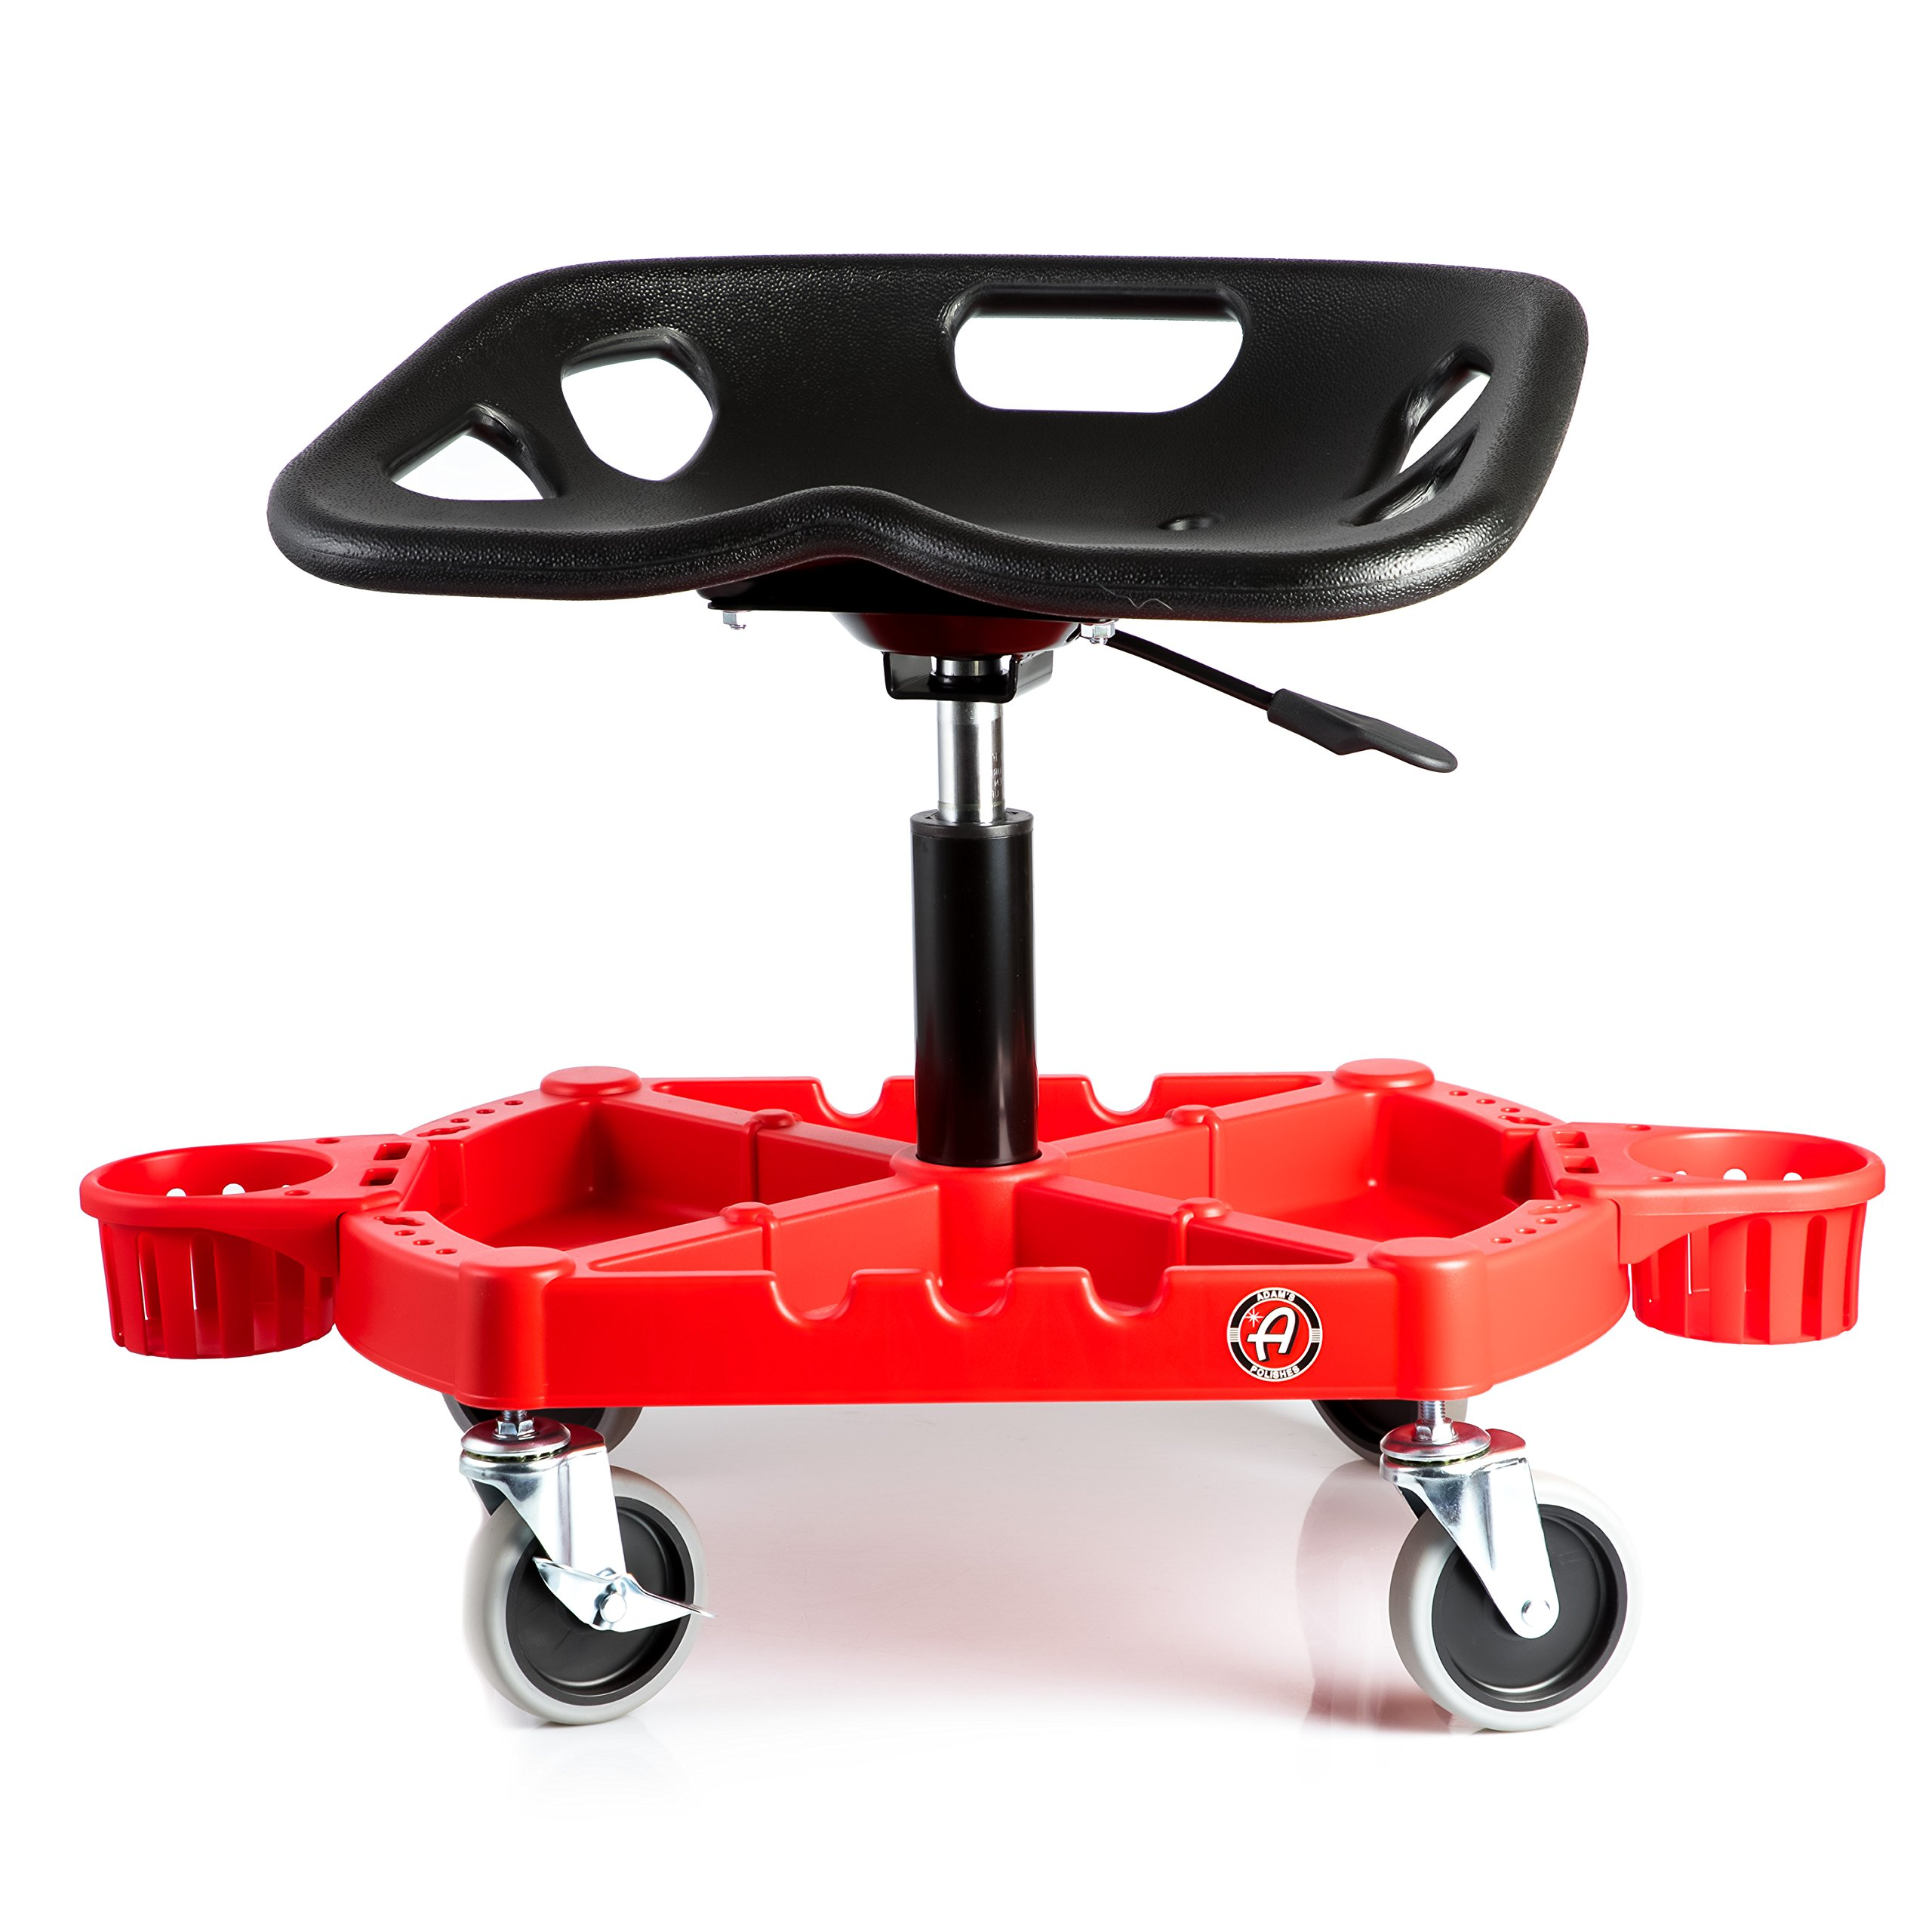 Adam's ProStool Seat - Detailing Creeper Ergonomically Designed for Comfort and Functionality - Adjustable Height and Heavy Duty Rolling Wheels - Comfortably Detail or Paint Correct Any Vehicle by Adam's Polishes